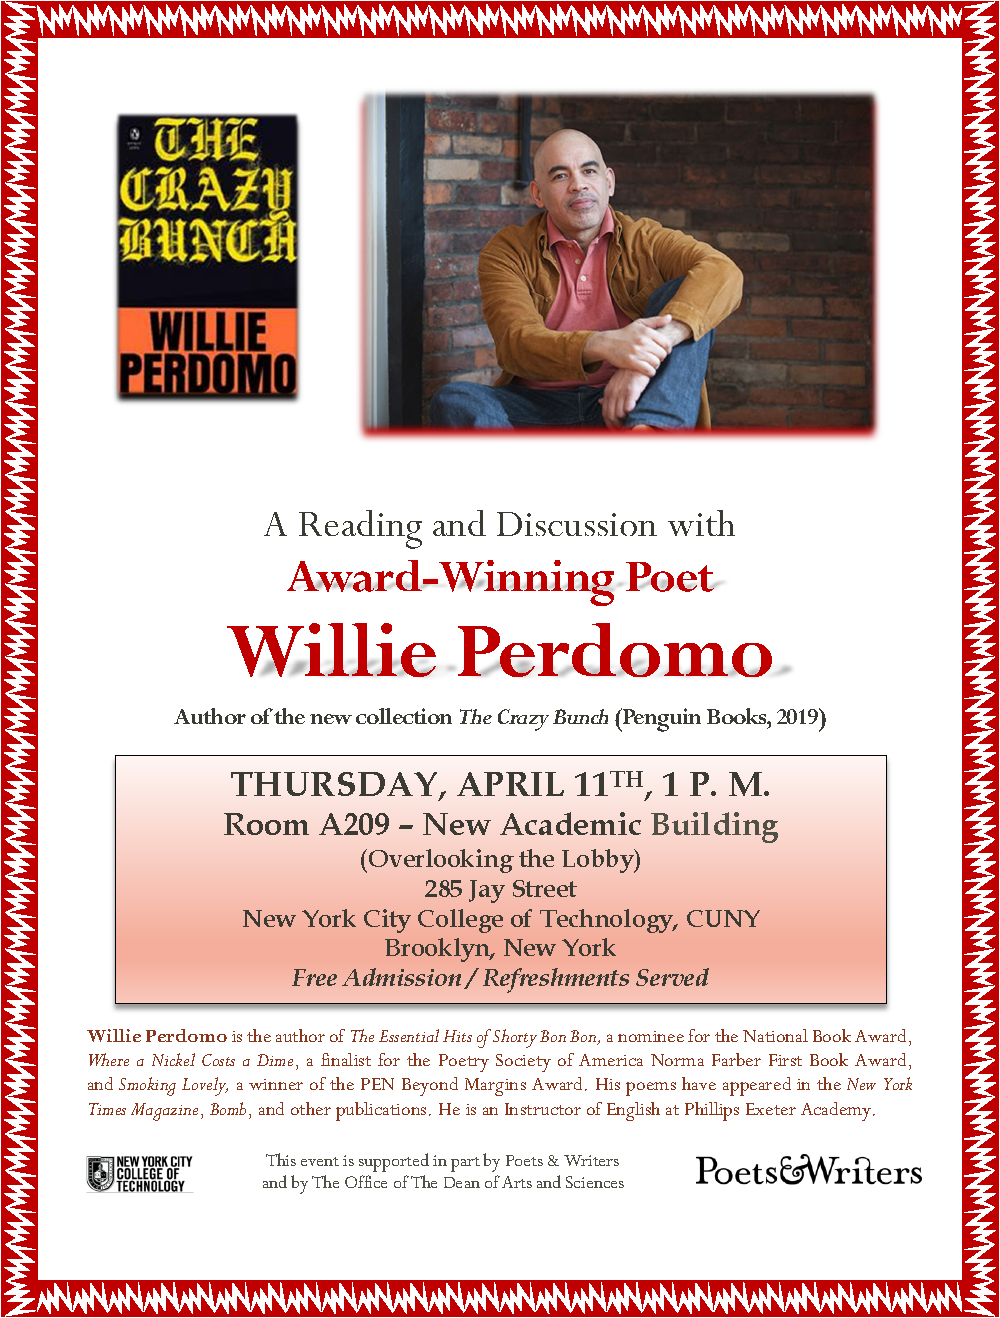 A Reading and Discussion with Award-Winning Poet Willie Perdomo 1